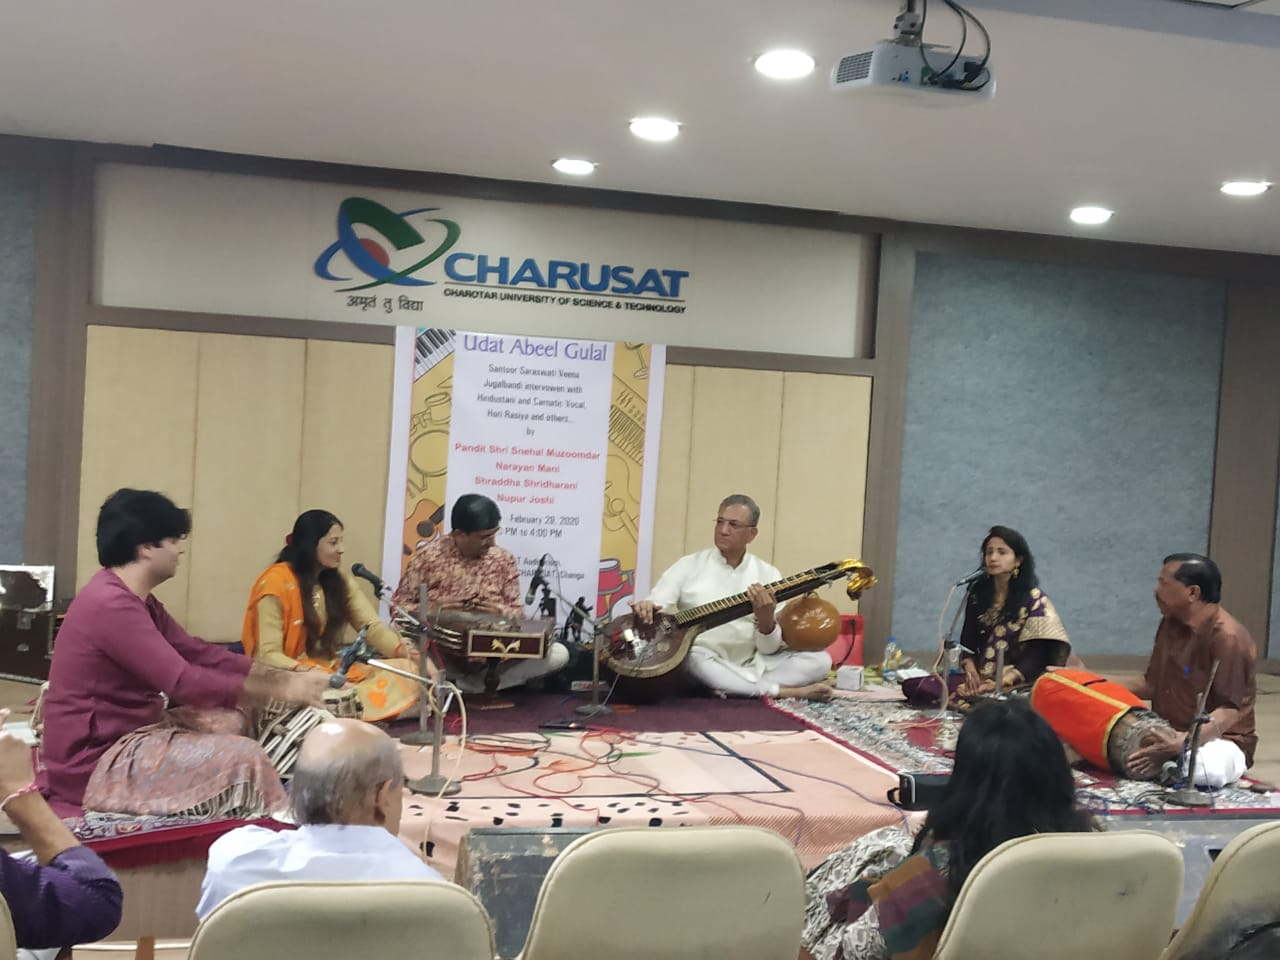 Udat Abeel Gulal Singing and Instrumental Event at CHARUSAT